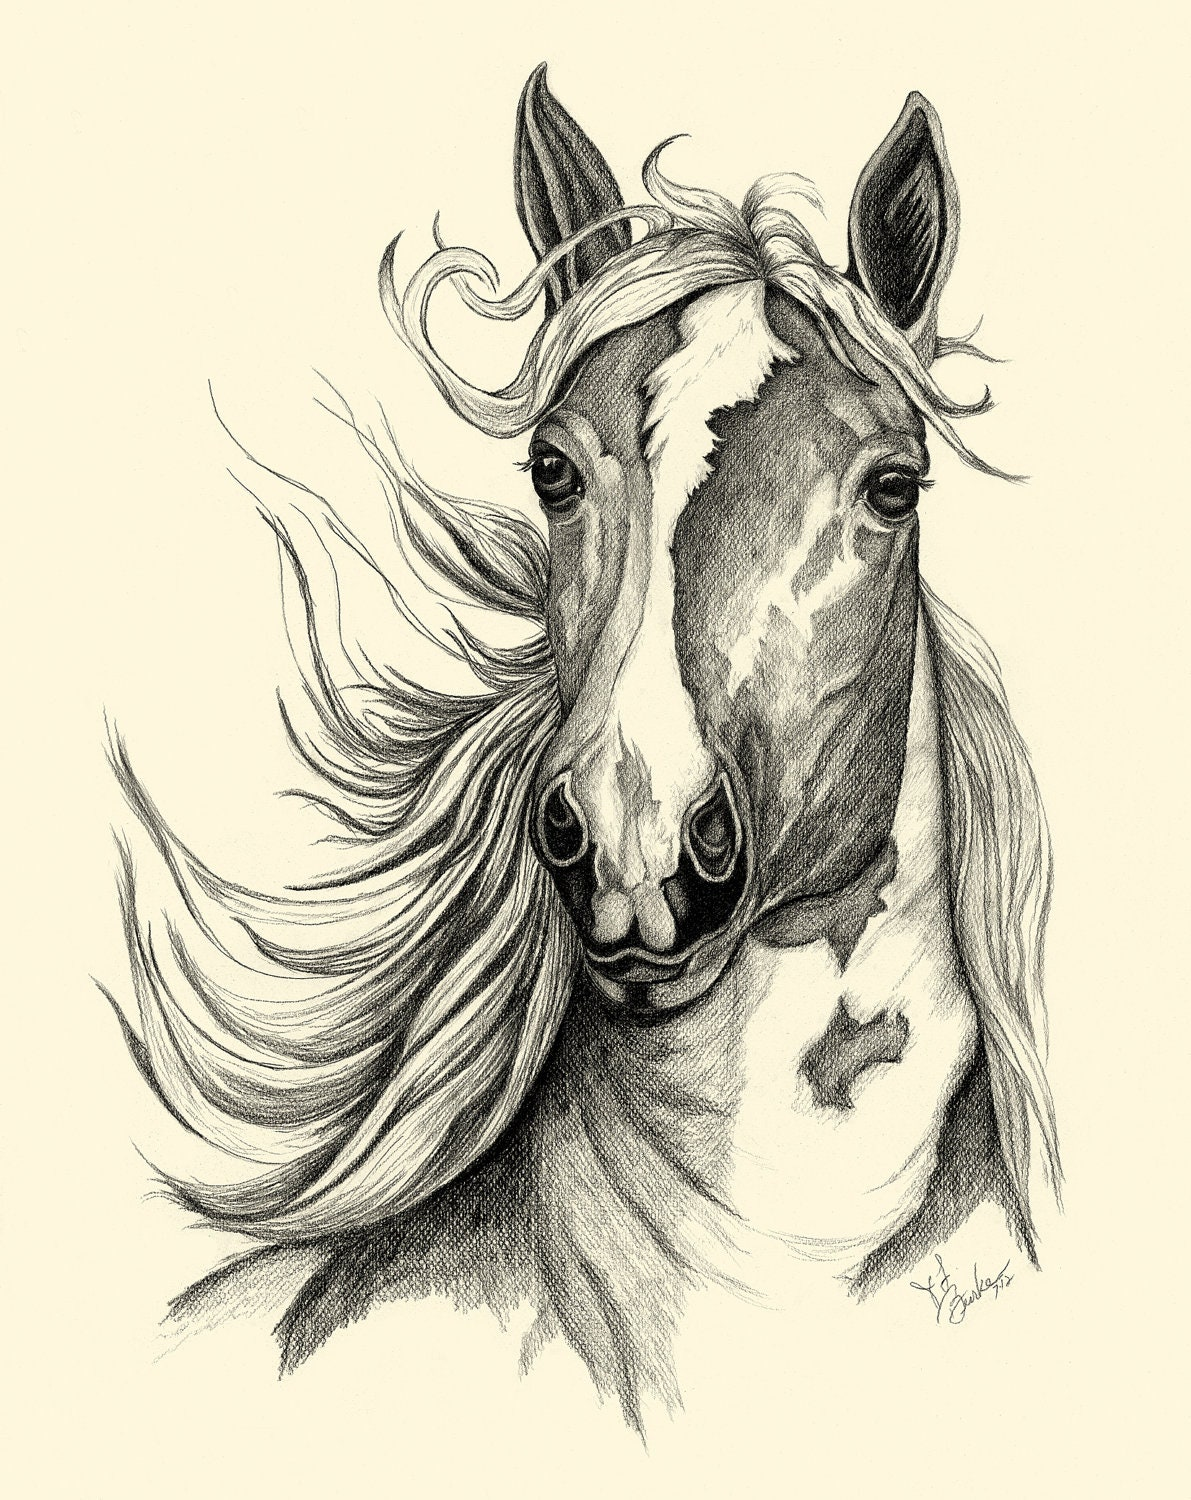 Learn How To Draw Paintings Portraits: HOW TO DRAW A HORSE ...  |Horse Art Drawings